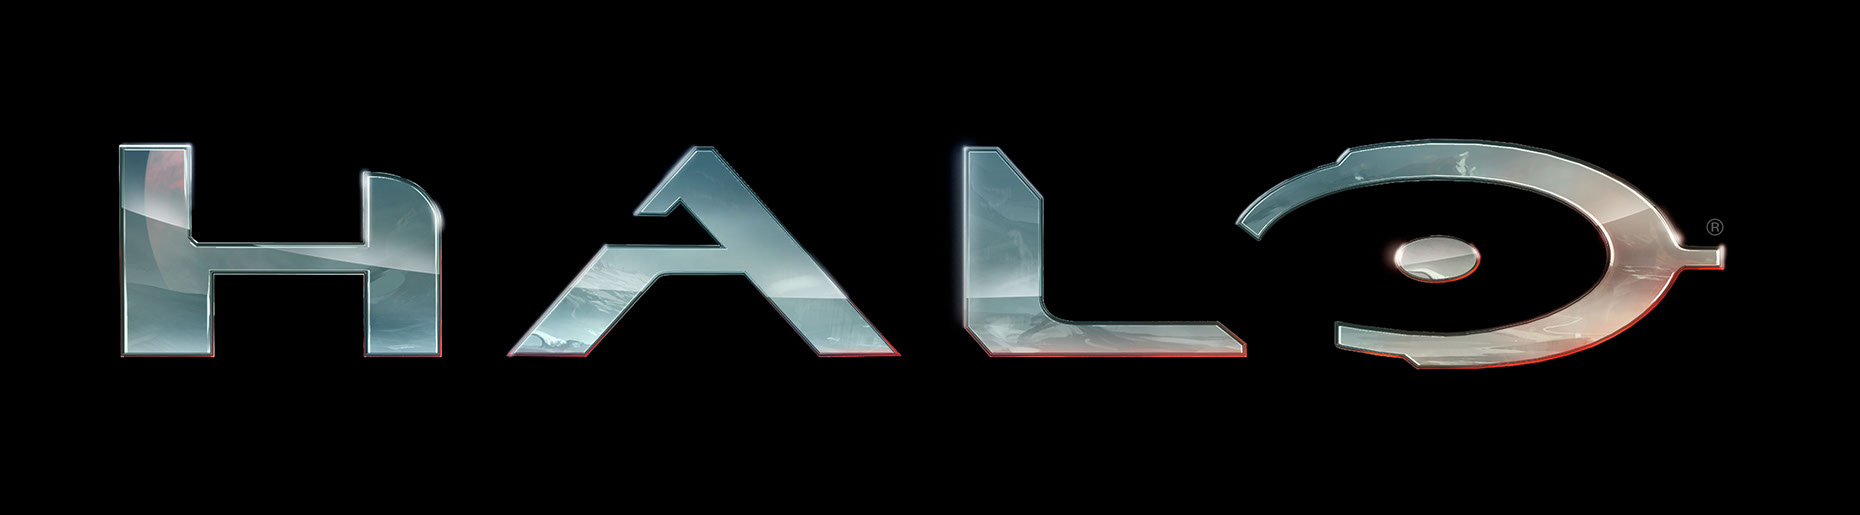 Photo-Imaging_Entertainment_Halo logo-Mike Bryan